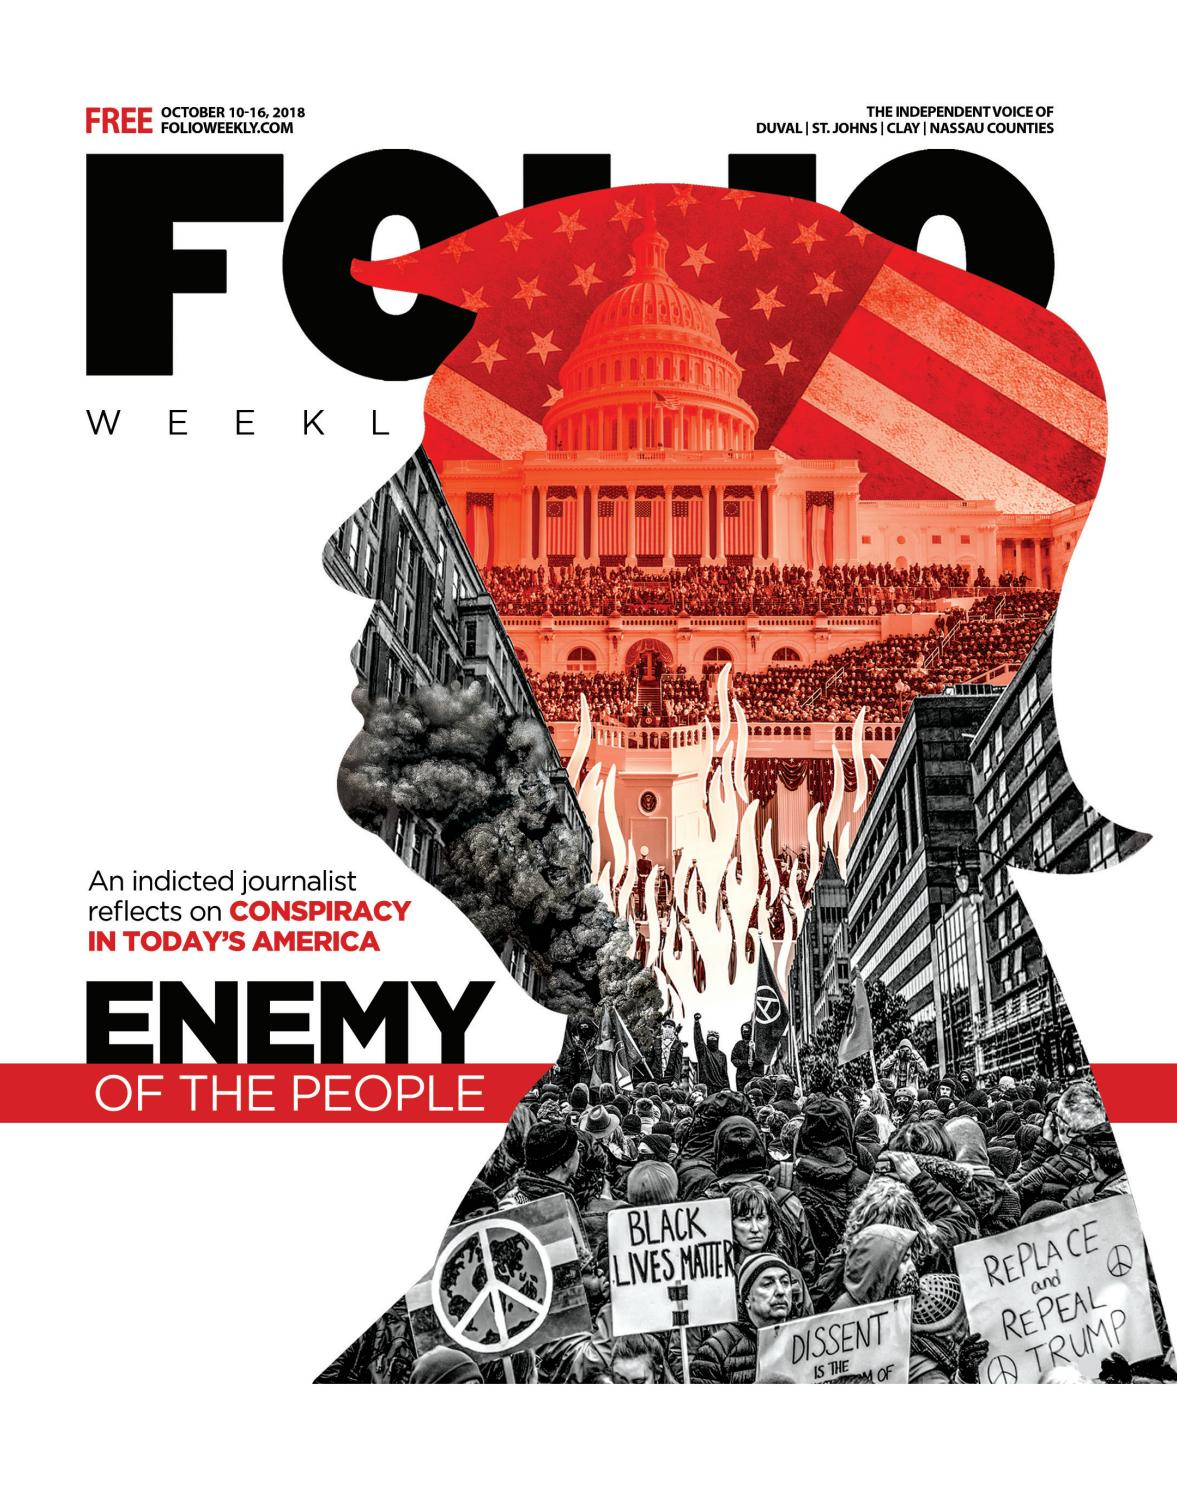 9d8b1e77273 Enemy Of The People by Folio Weekly - issuu